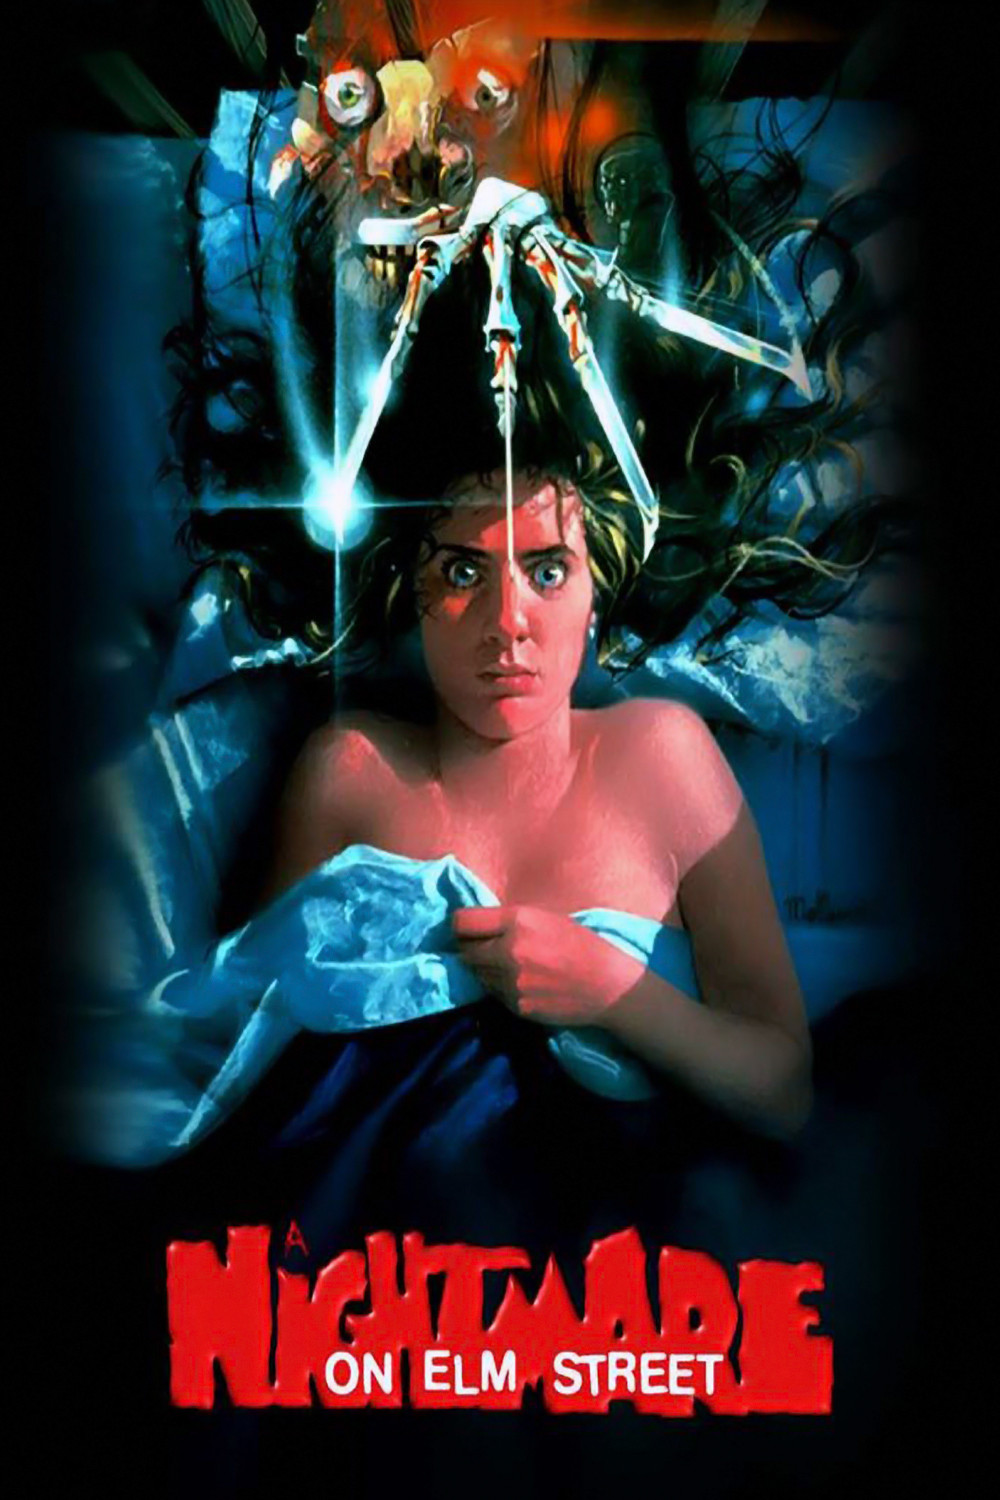 a nightmare on elm street poster Nightmare on Elm Street